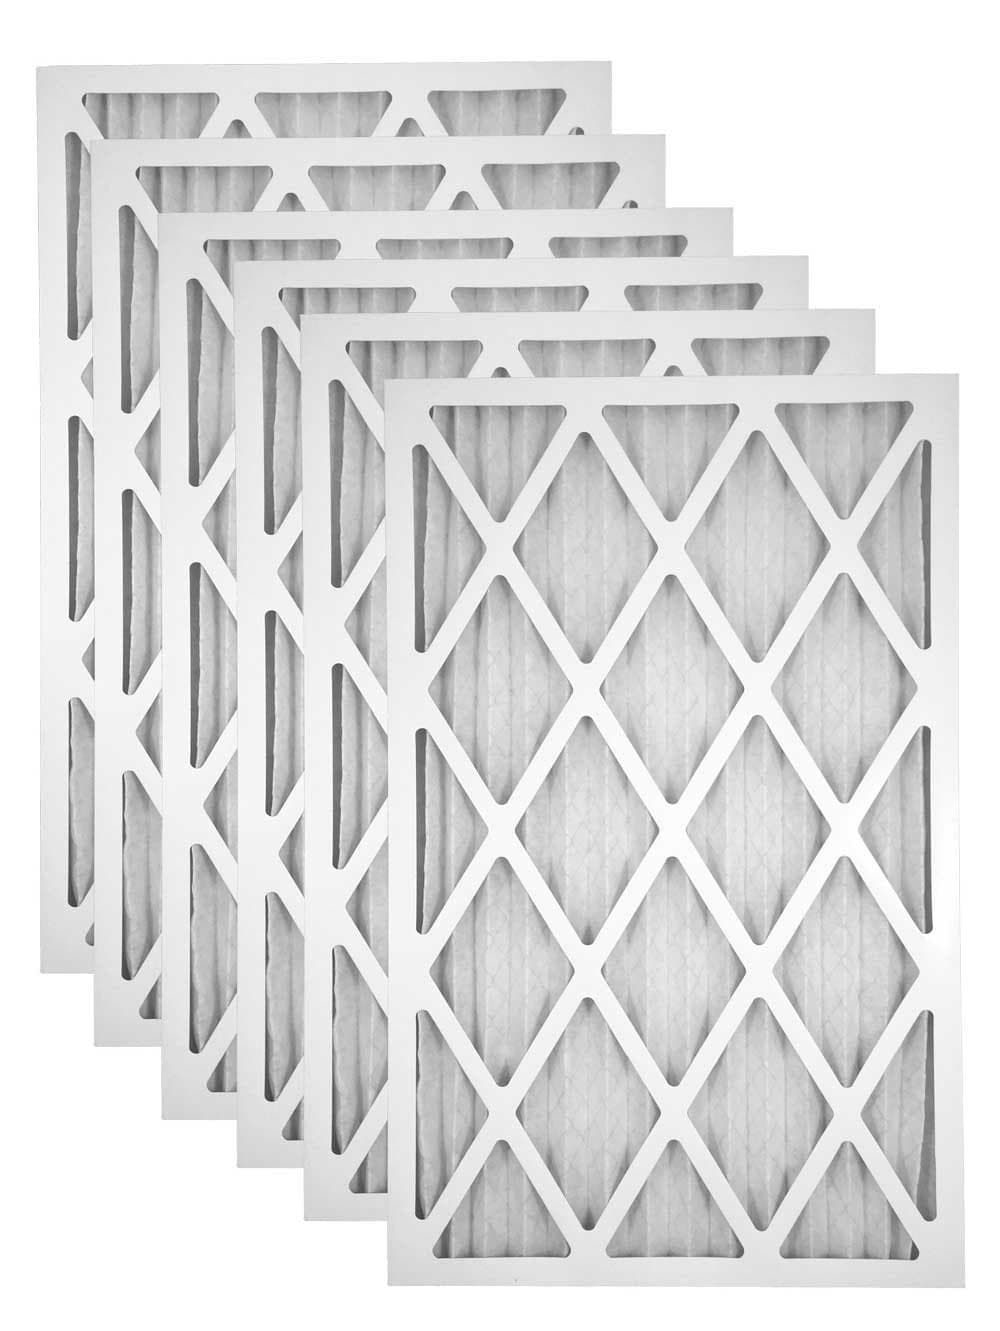 Atomic 12x16x1 Merv 13 Allergy Elite Pleated AC Furnace Filter - Case of 6